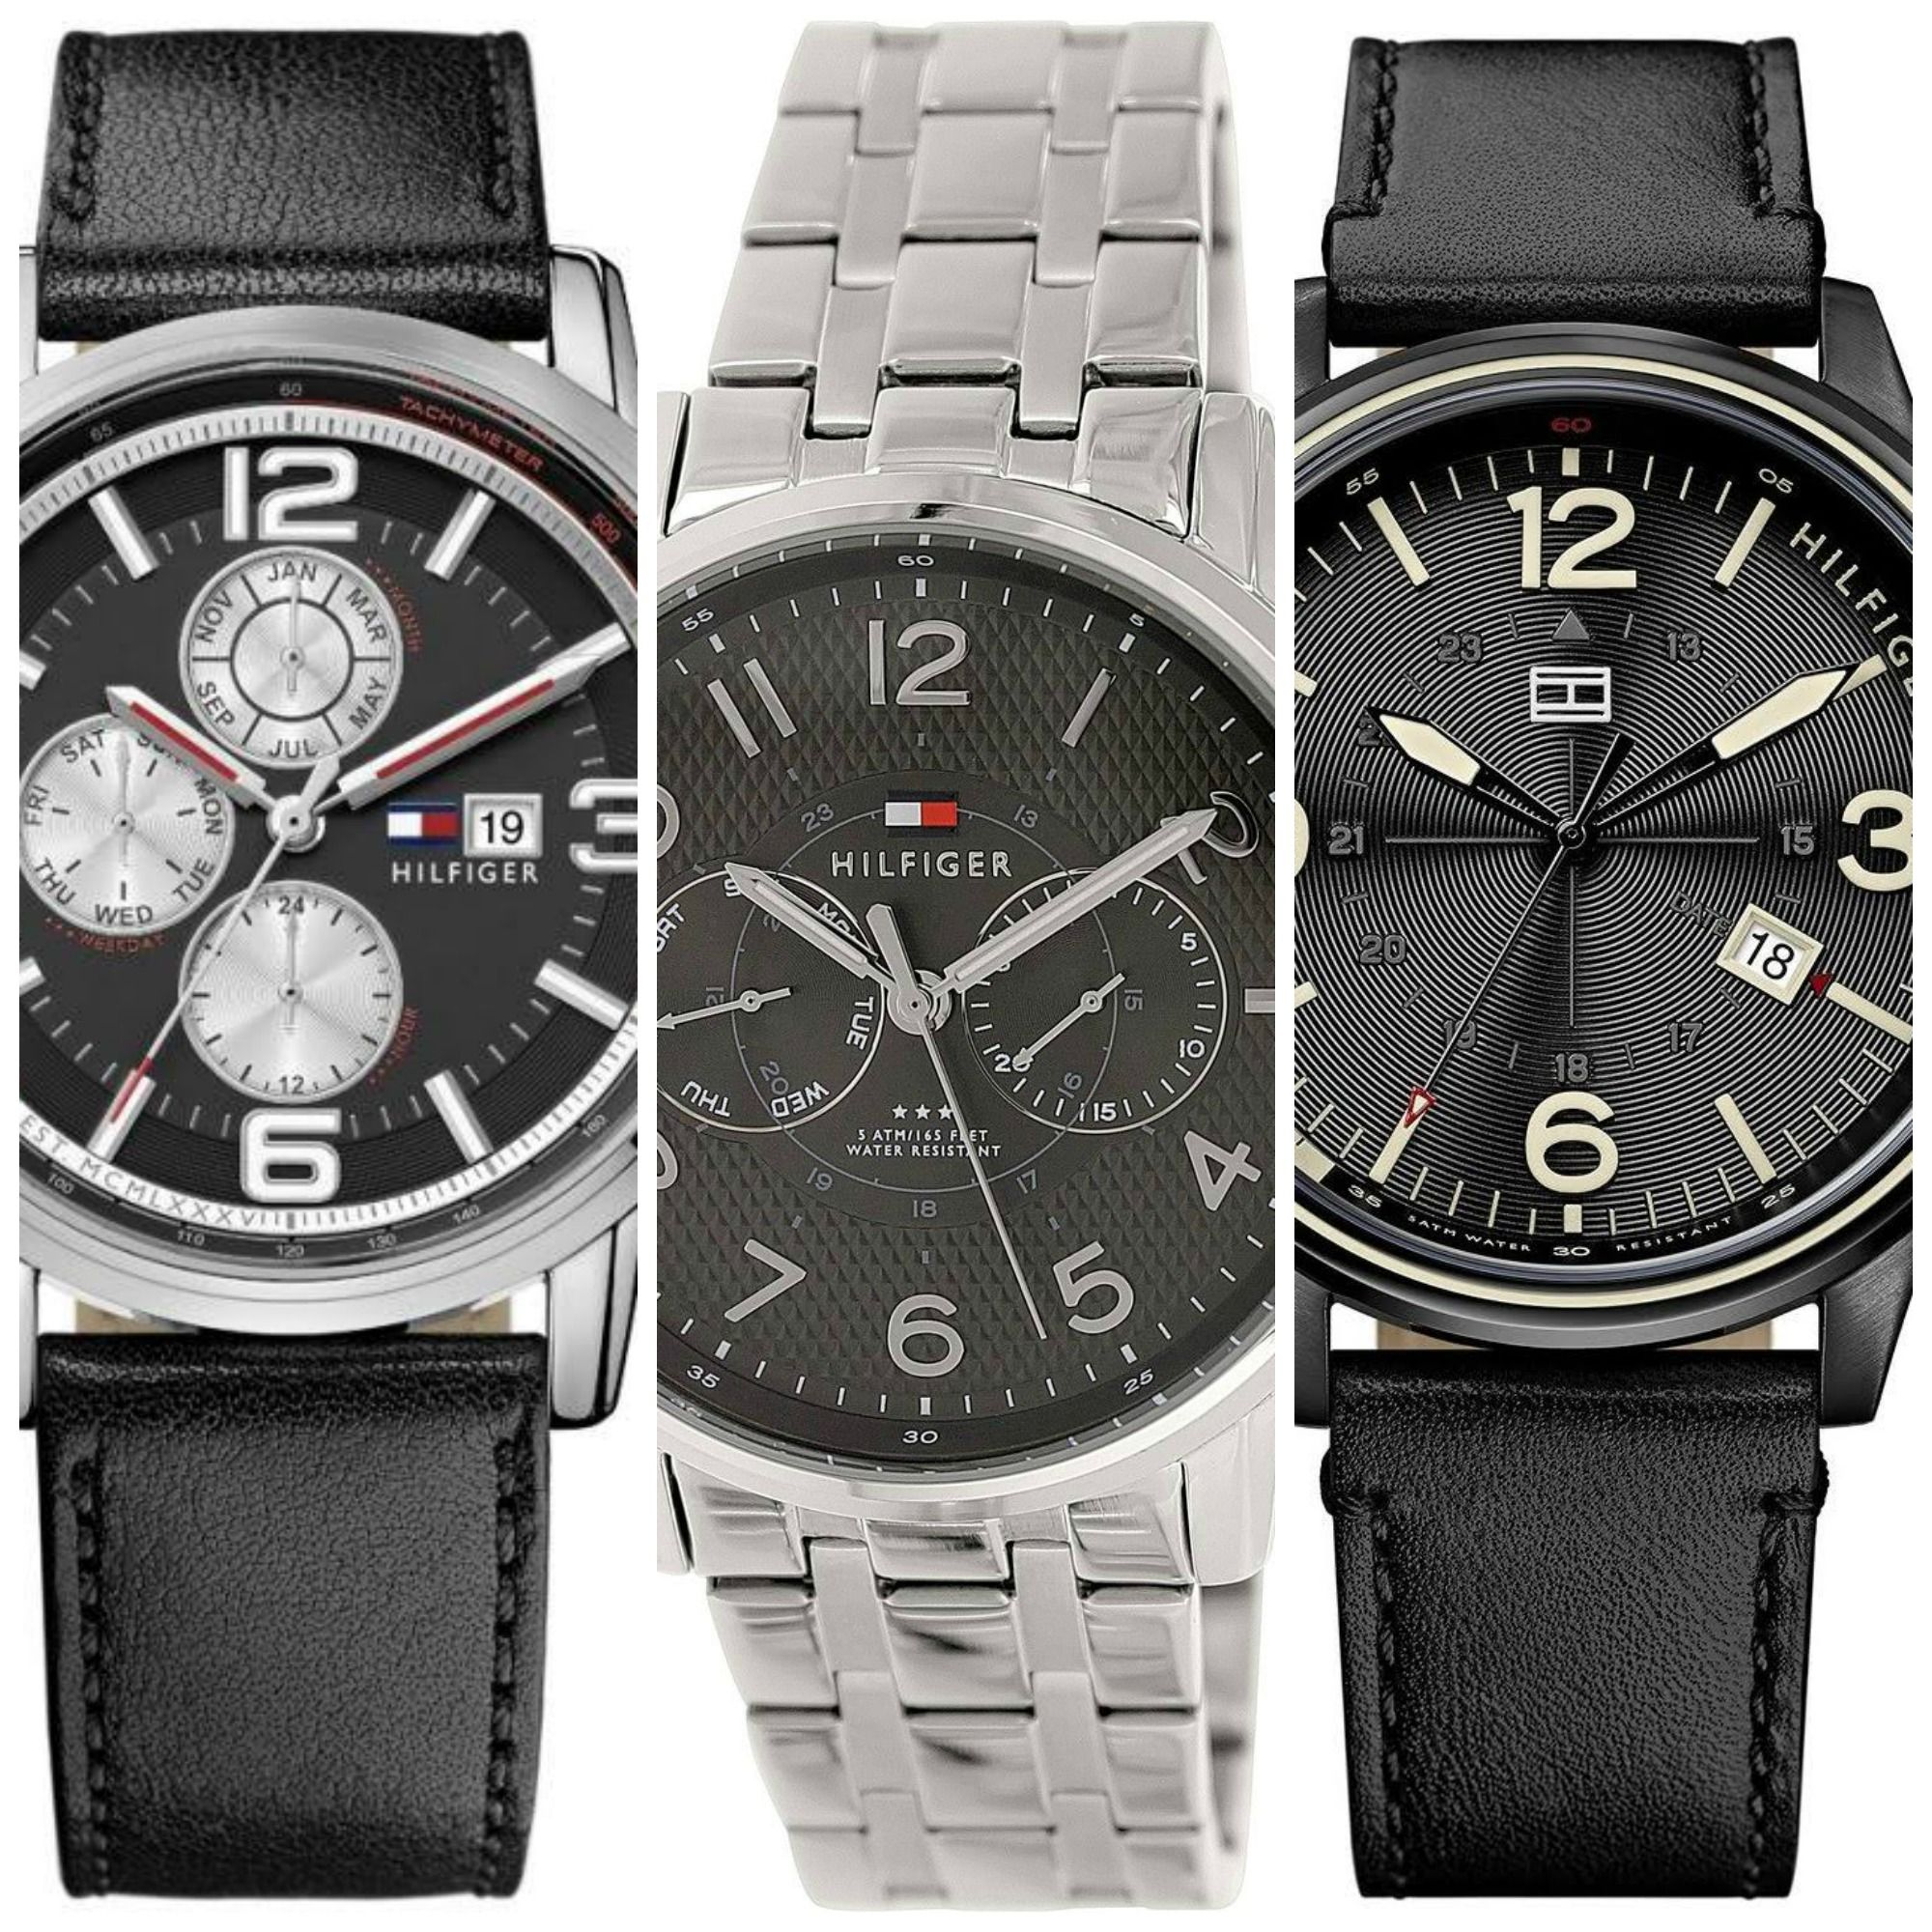 10 classy men s watches under 100 watches classy 5 of the best cheap tommy hilfiger watches under £100 check them out